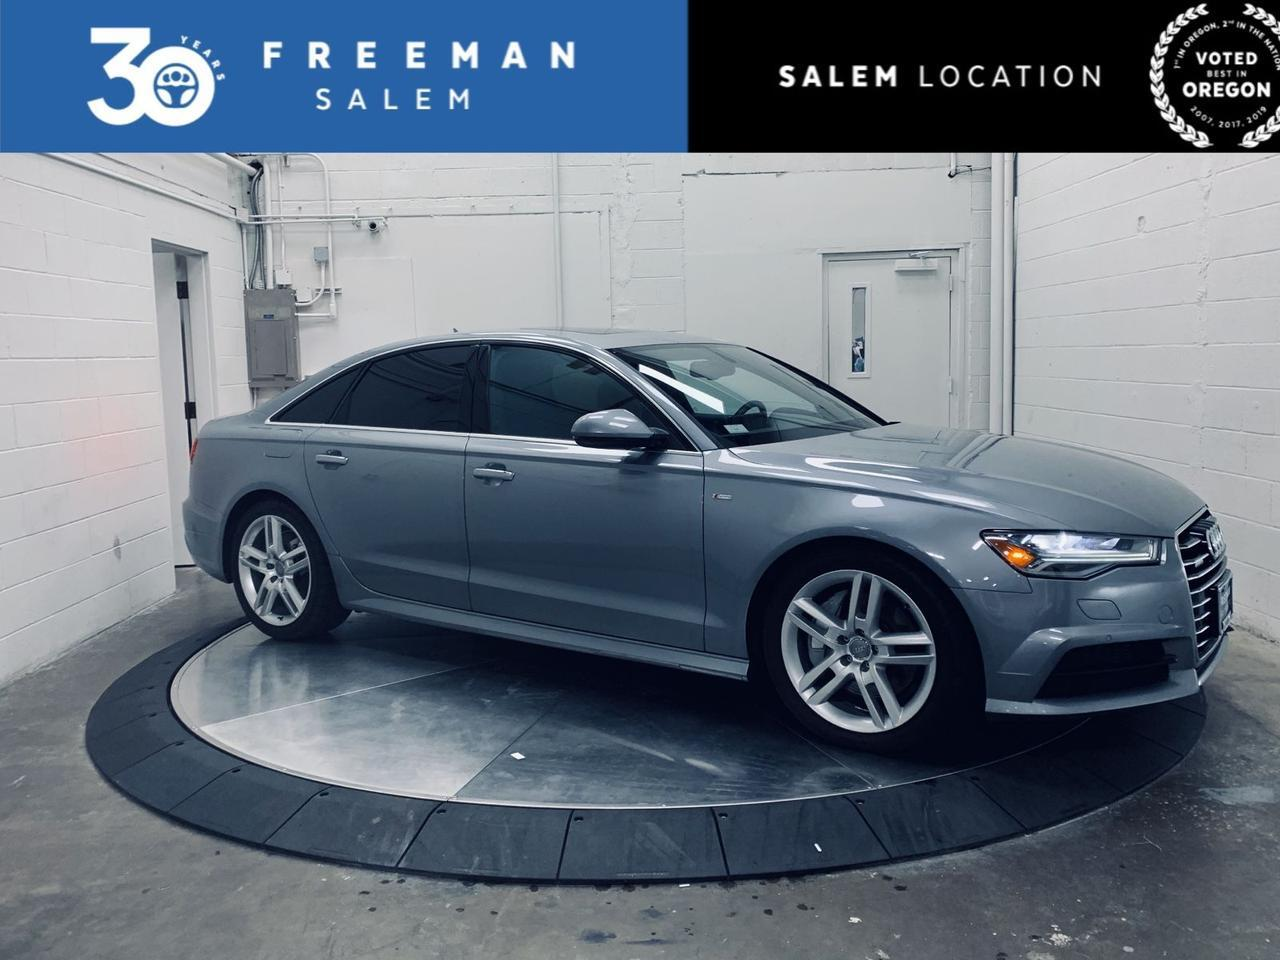 2017 Audi A6 quattro Season of Audi Selection Salem OR